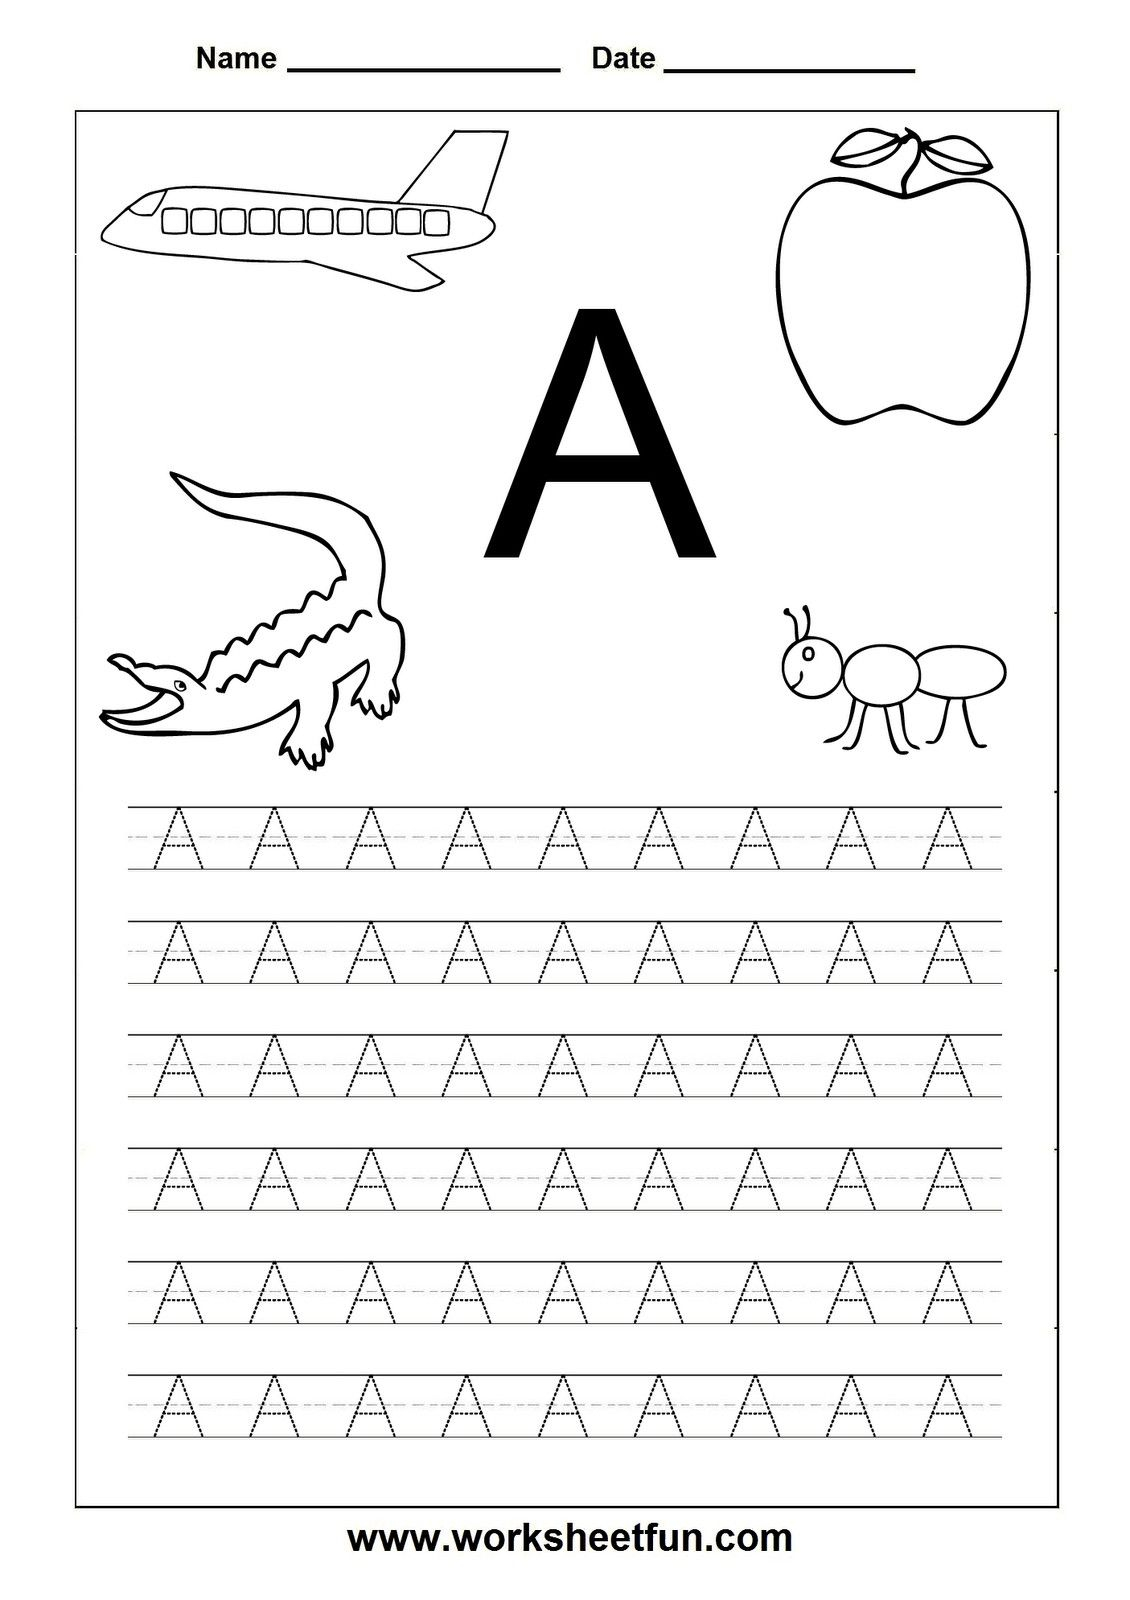 Printable Letters For Preschoolers - Paul's House | Alphabet